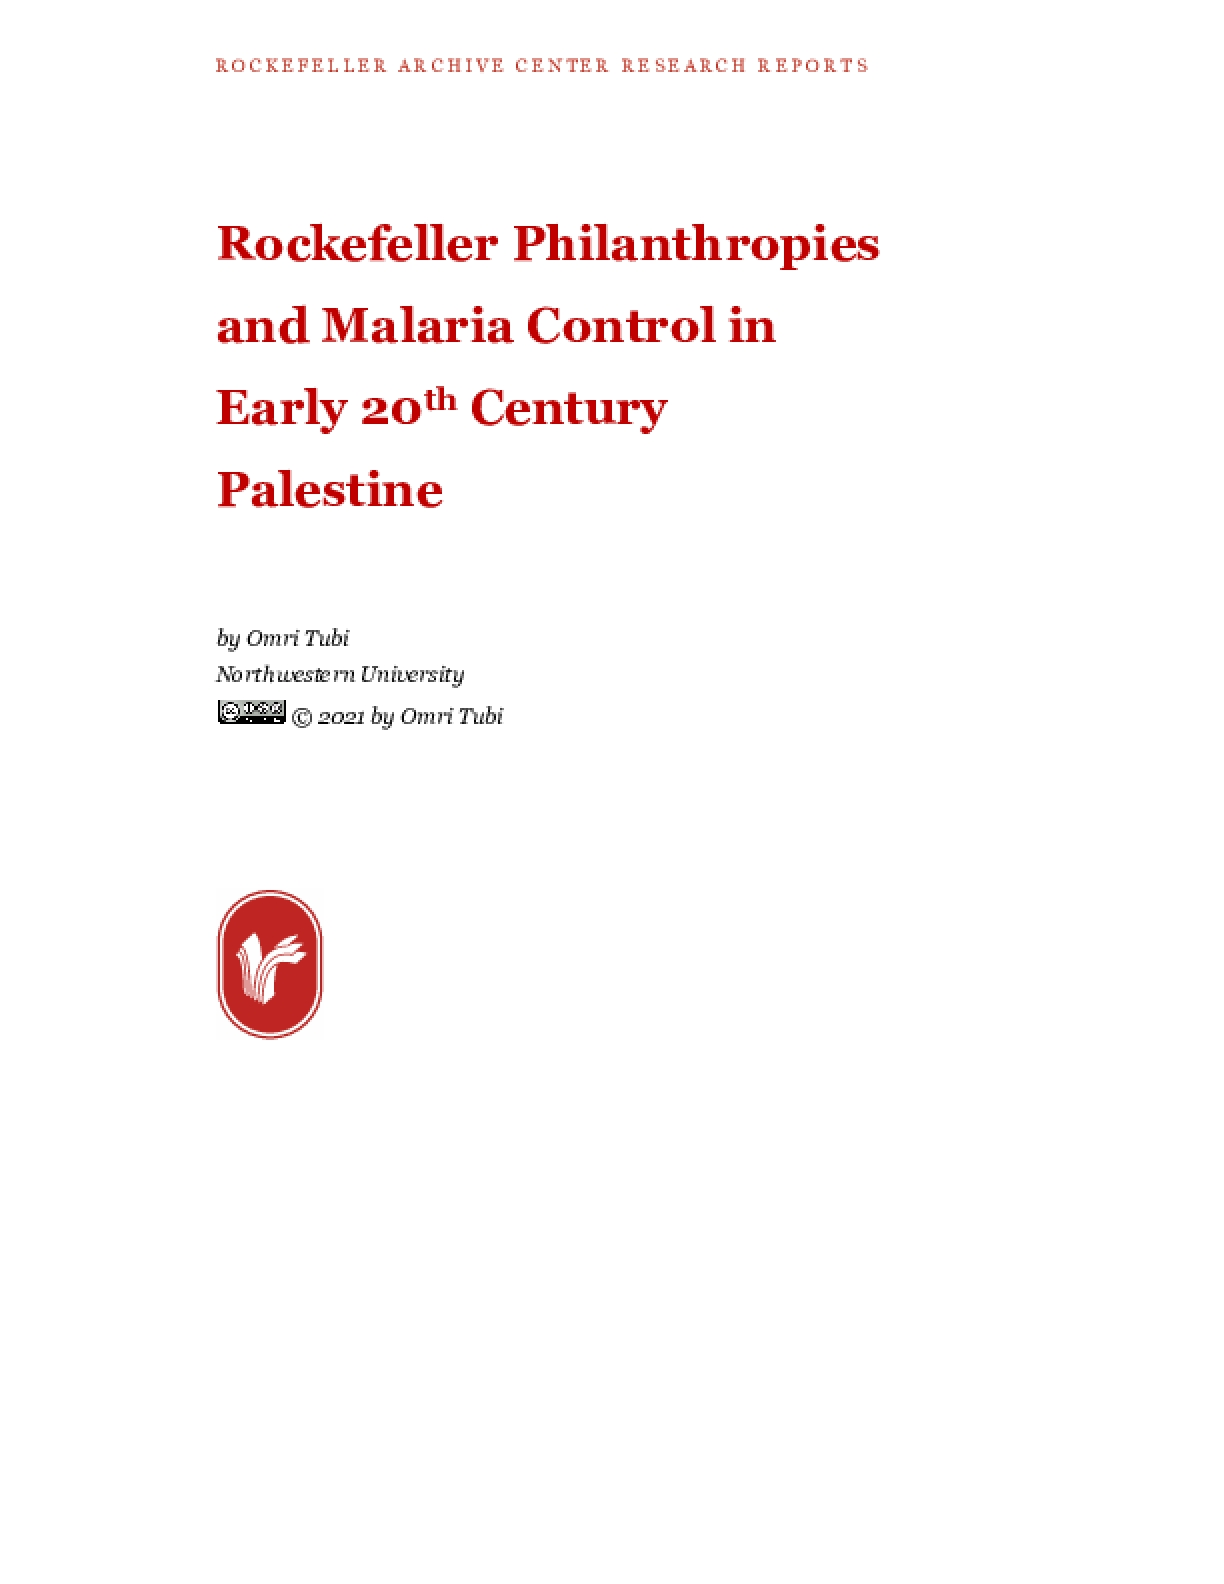 Rockefeller Philanthropies and Malaria Control in Early 20th Century Palestine